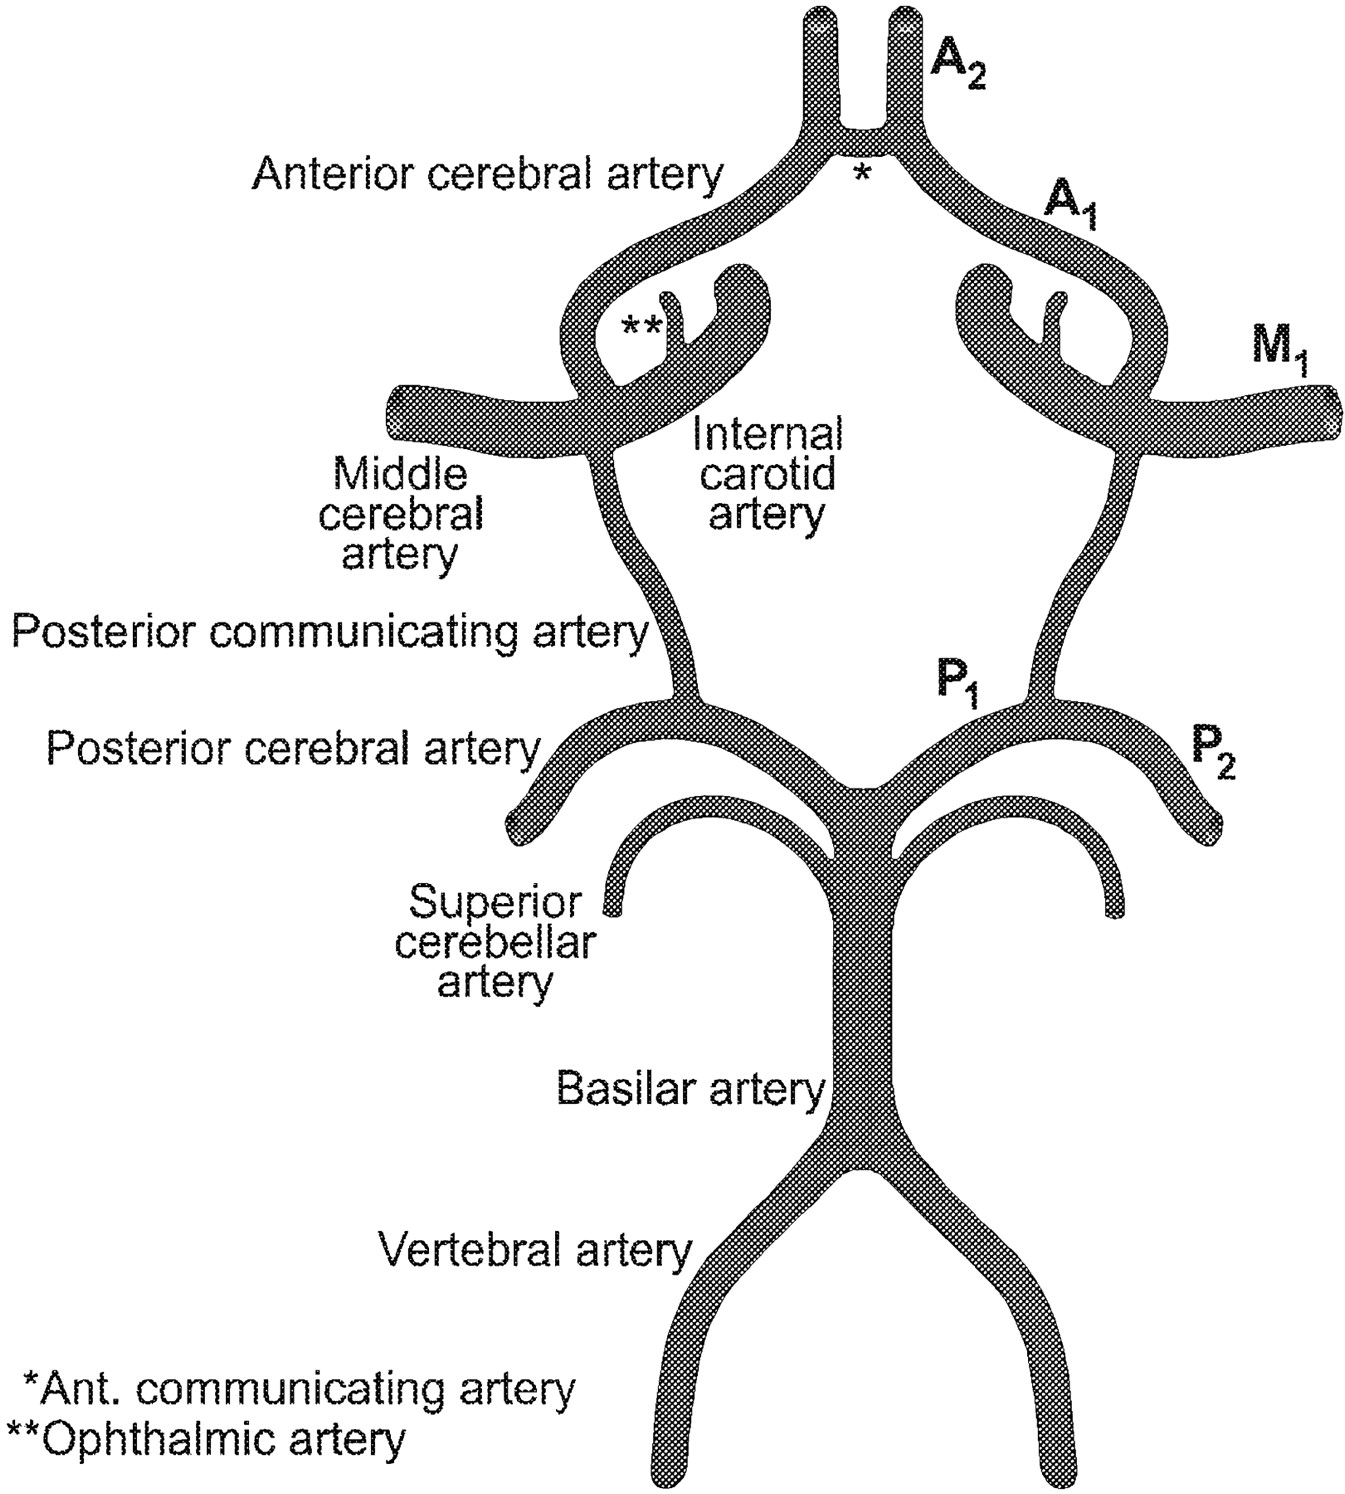 Circle Of Willis Drawing at GetDrawings.com | Free for personal use ...